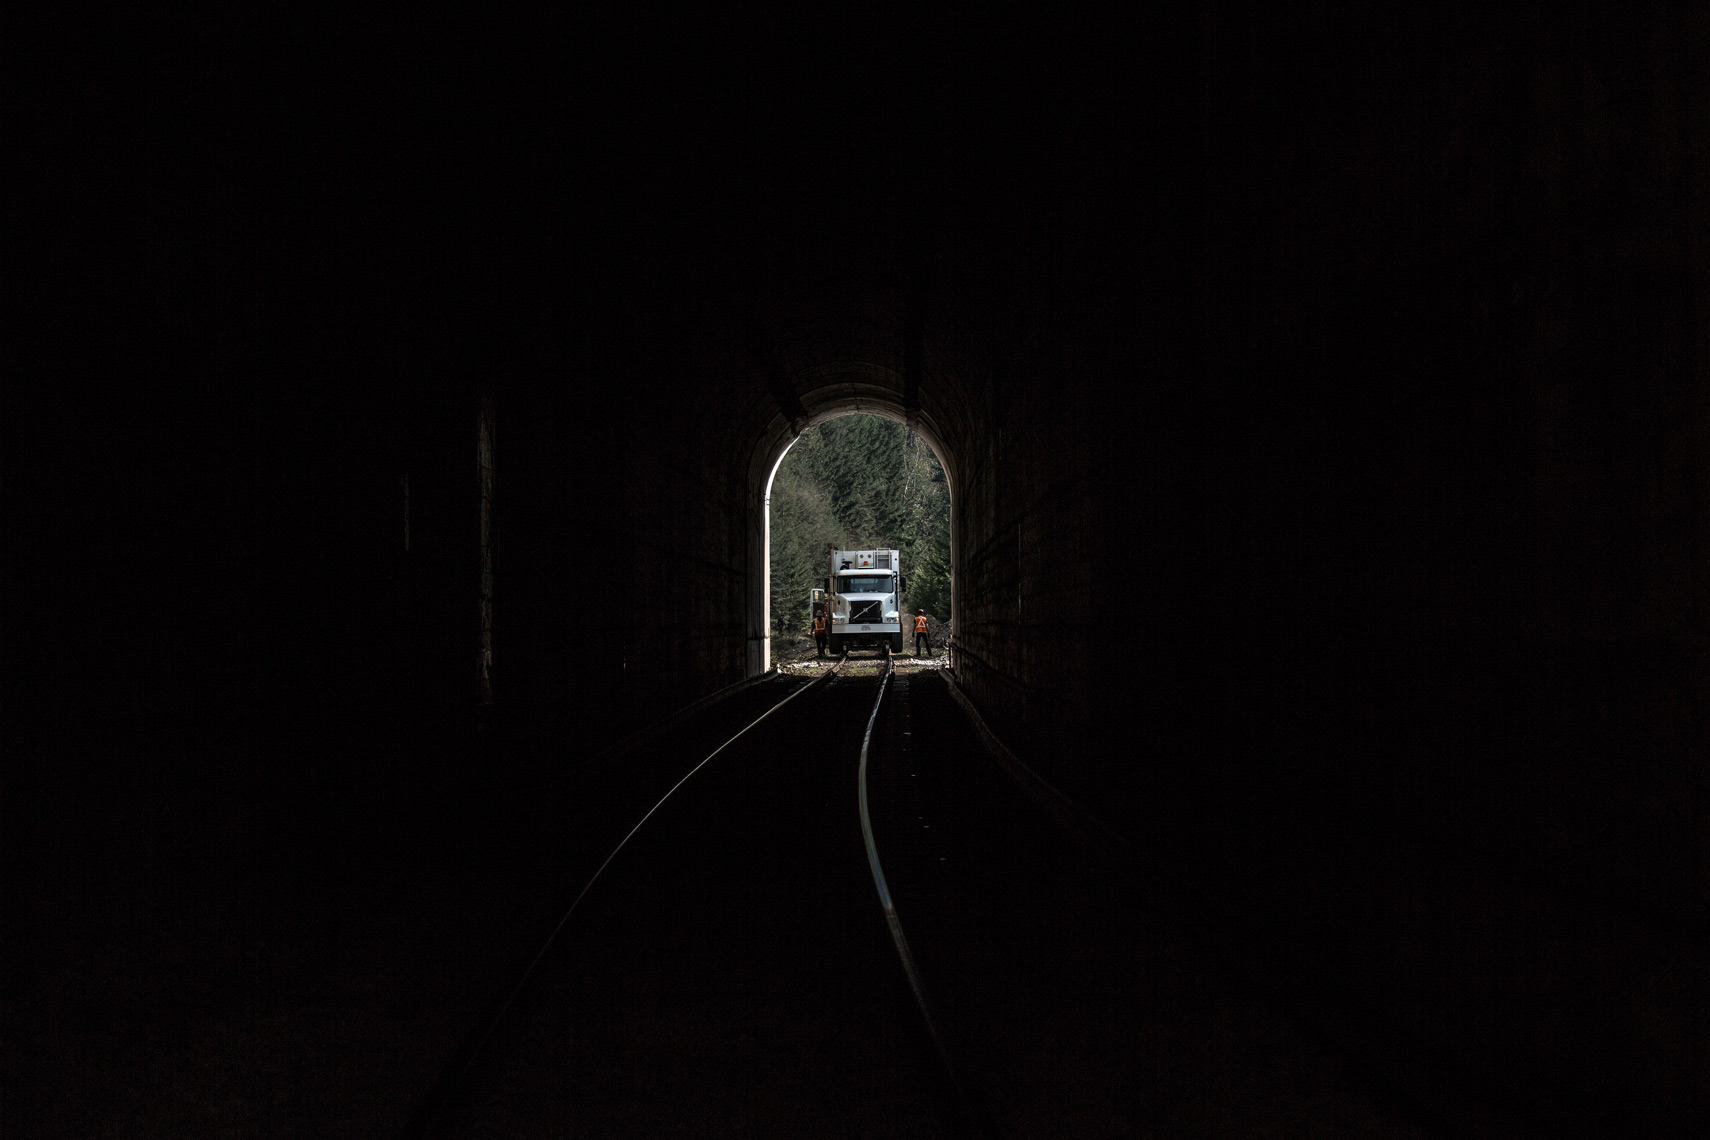 railroad workers working at the end of a tunnel